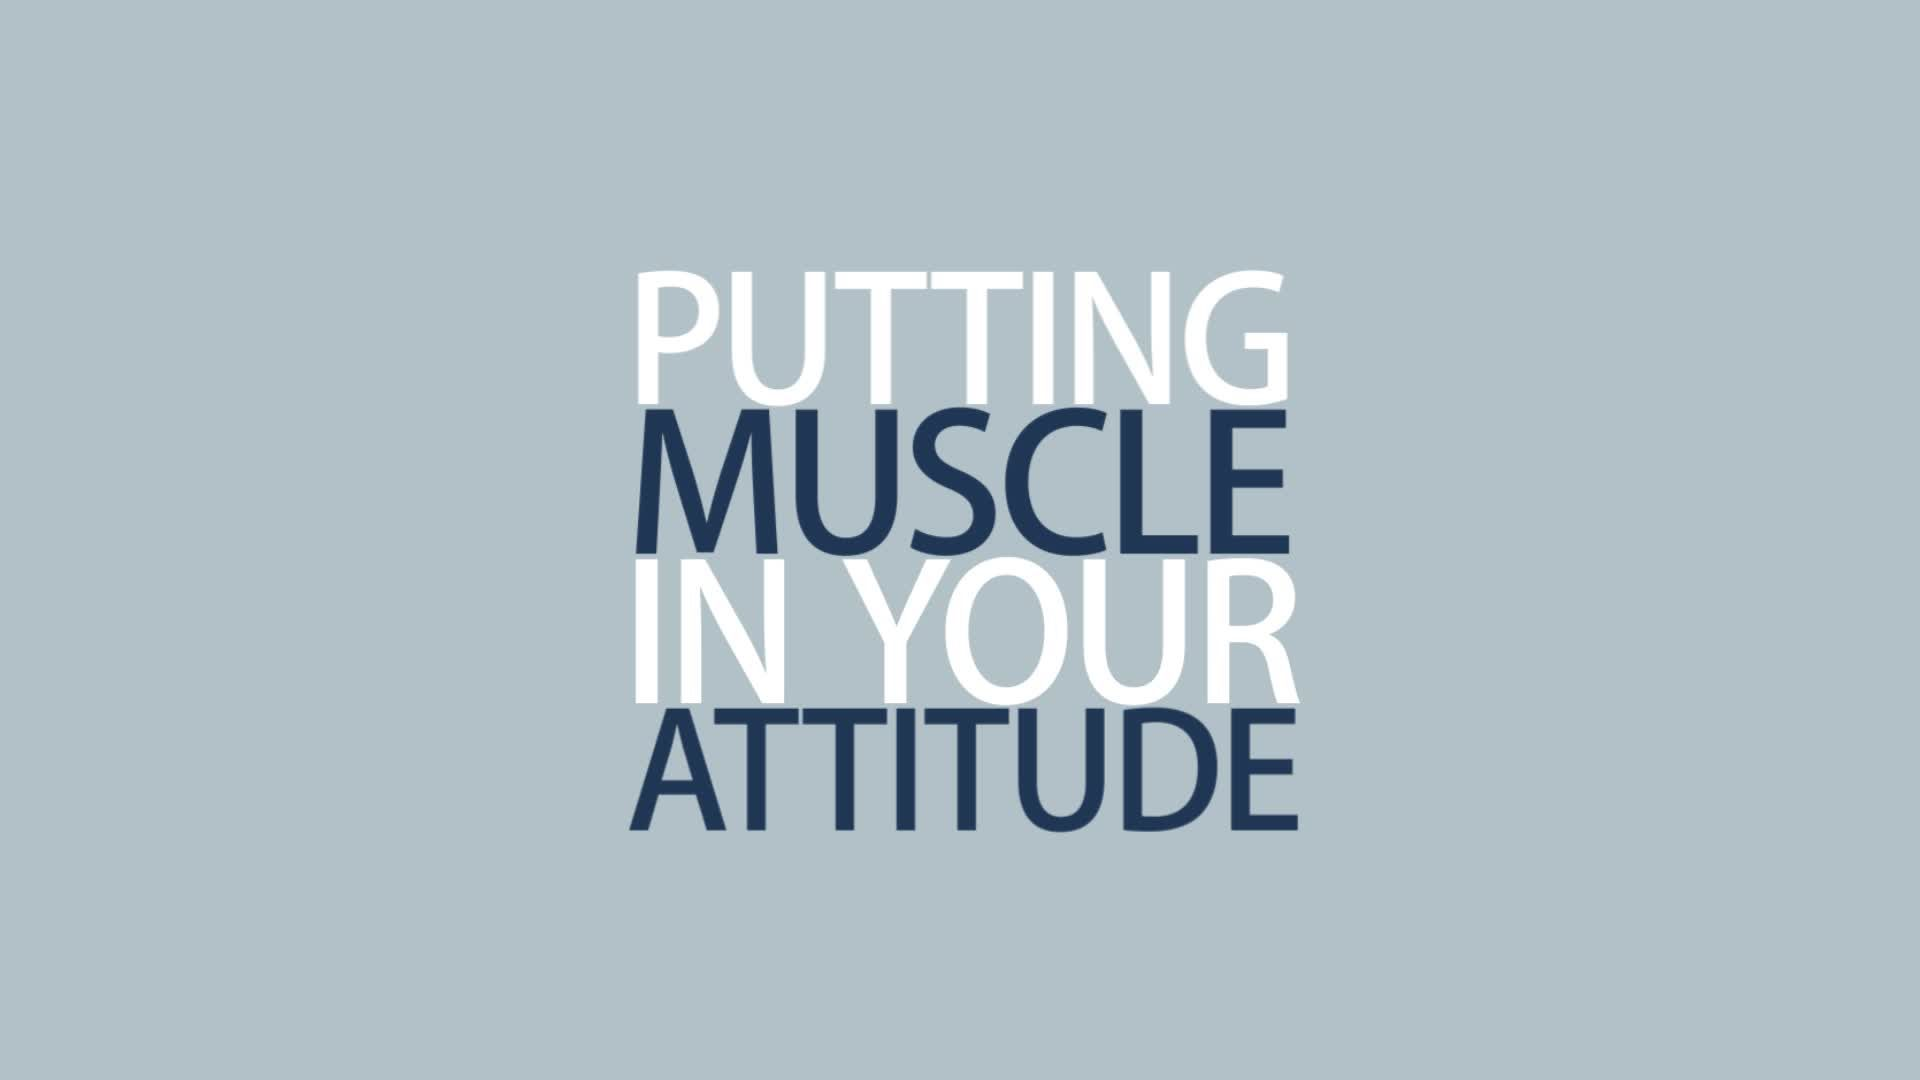 Putting Muscle In Your Attitude